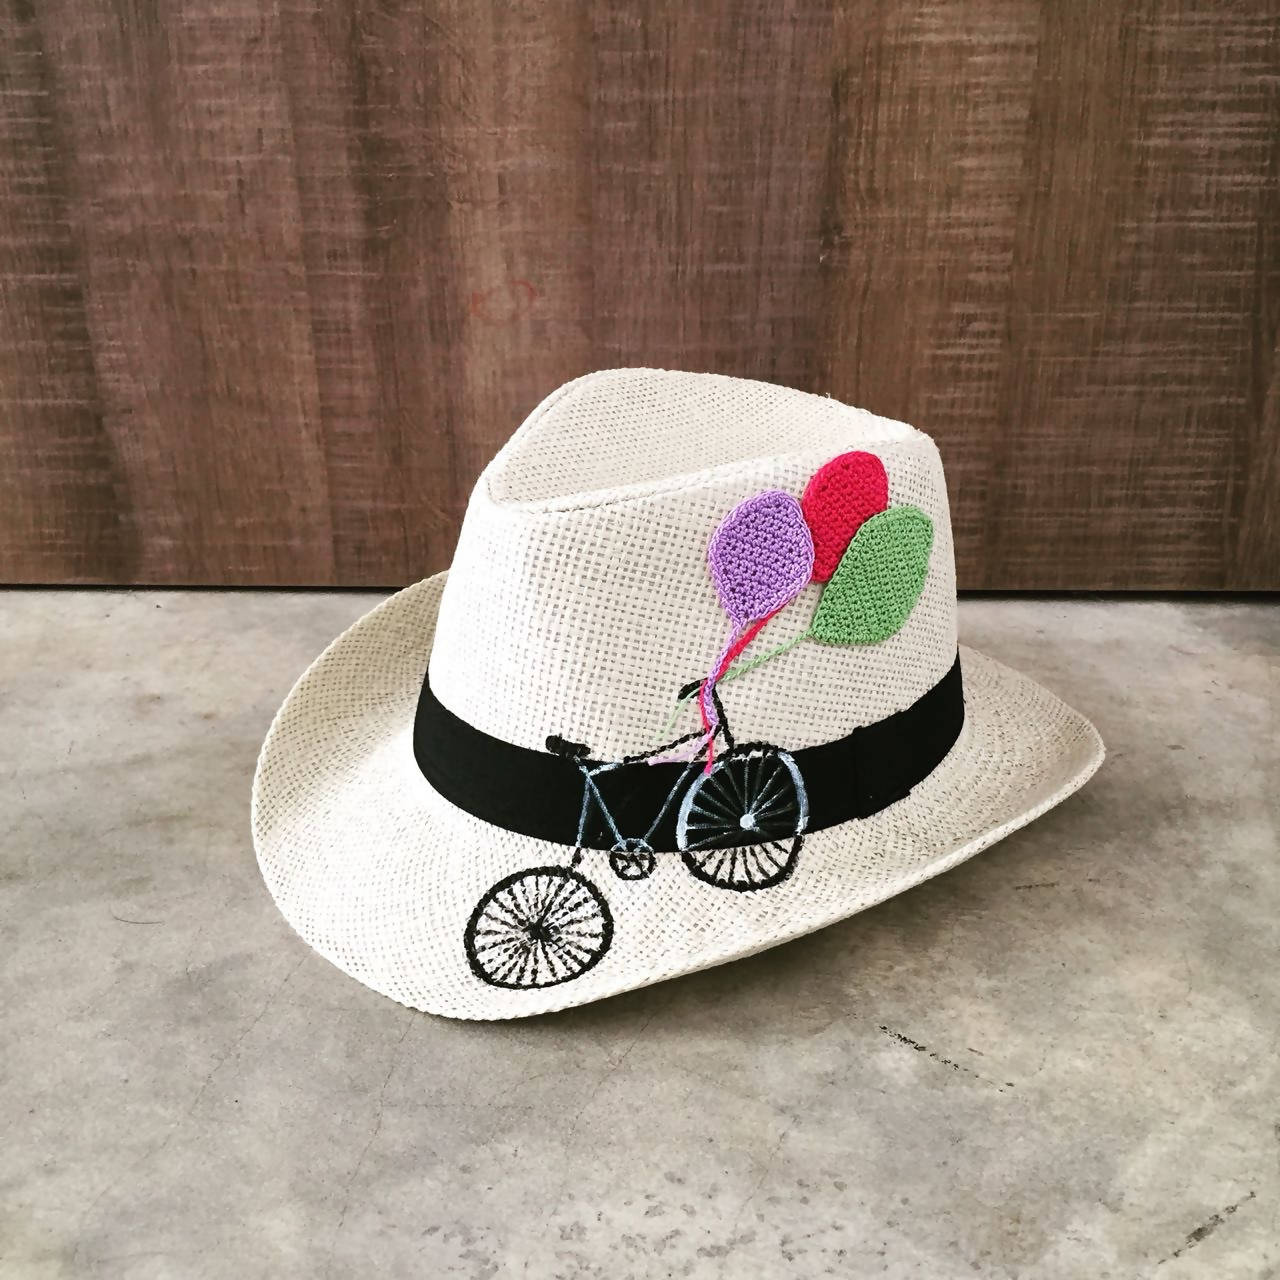 Hat - Bicycle with balloons